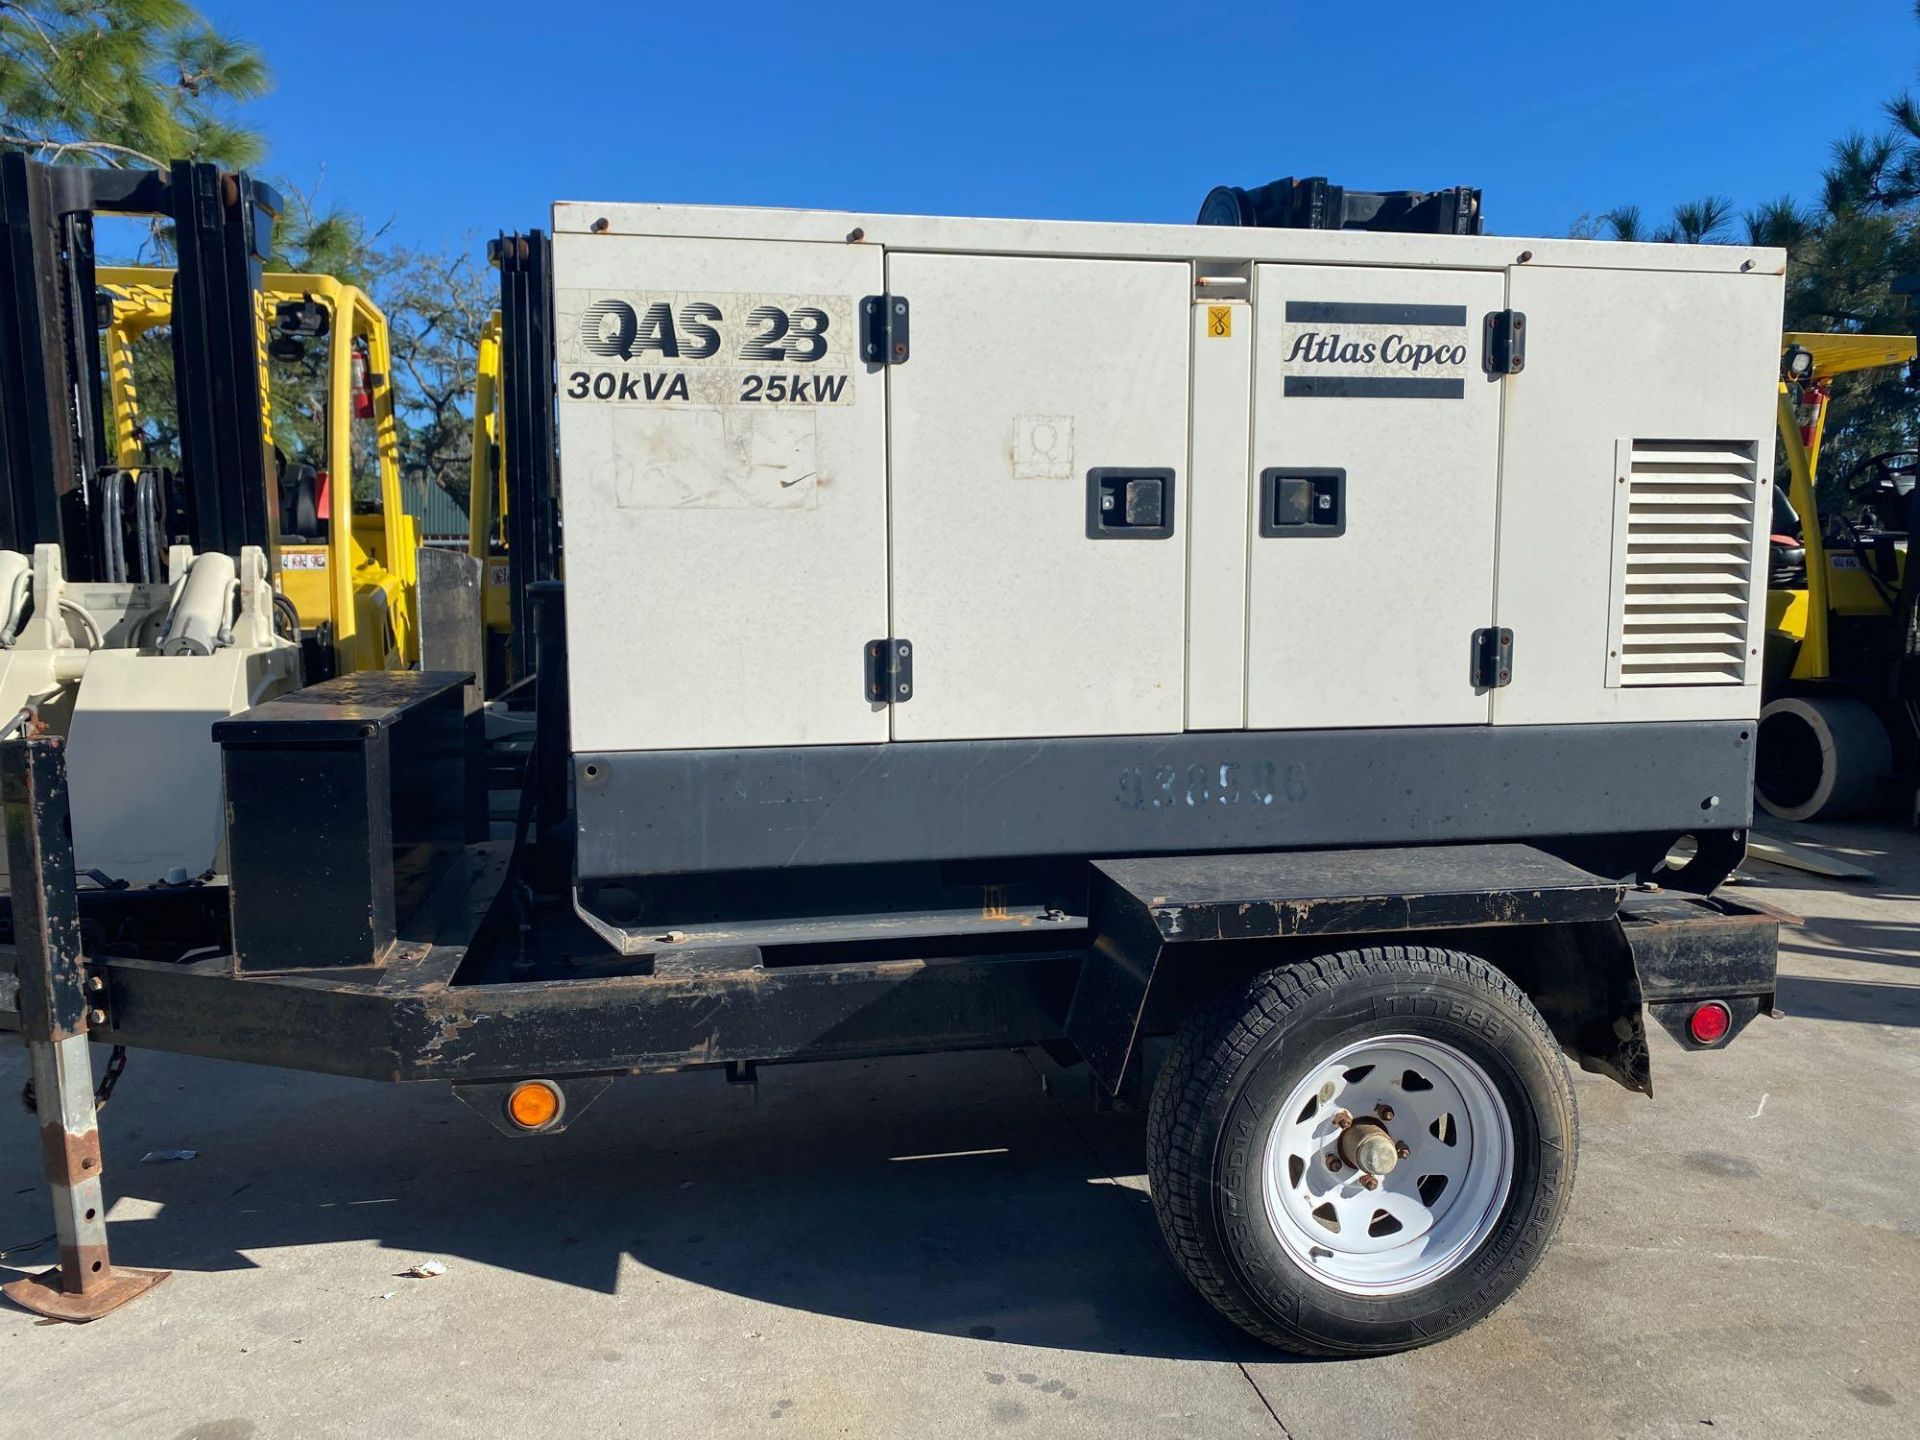 Lot 12A - ATLAS COPCO G50 GENERATOR YANMAR DIESEL, TRAILER MOUNTED, 2041 HOURS SHOWING, RUNS AND OPERATES